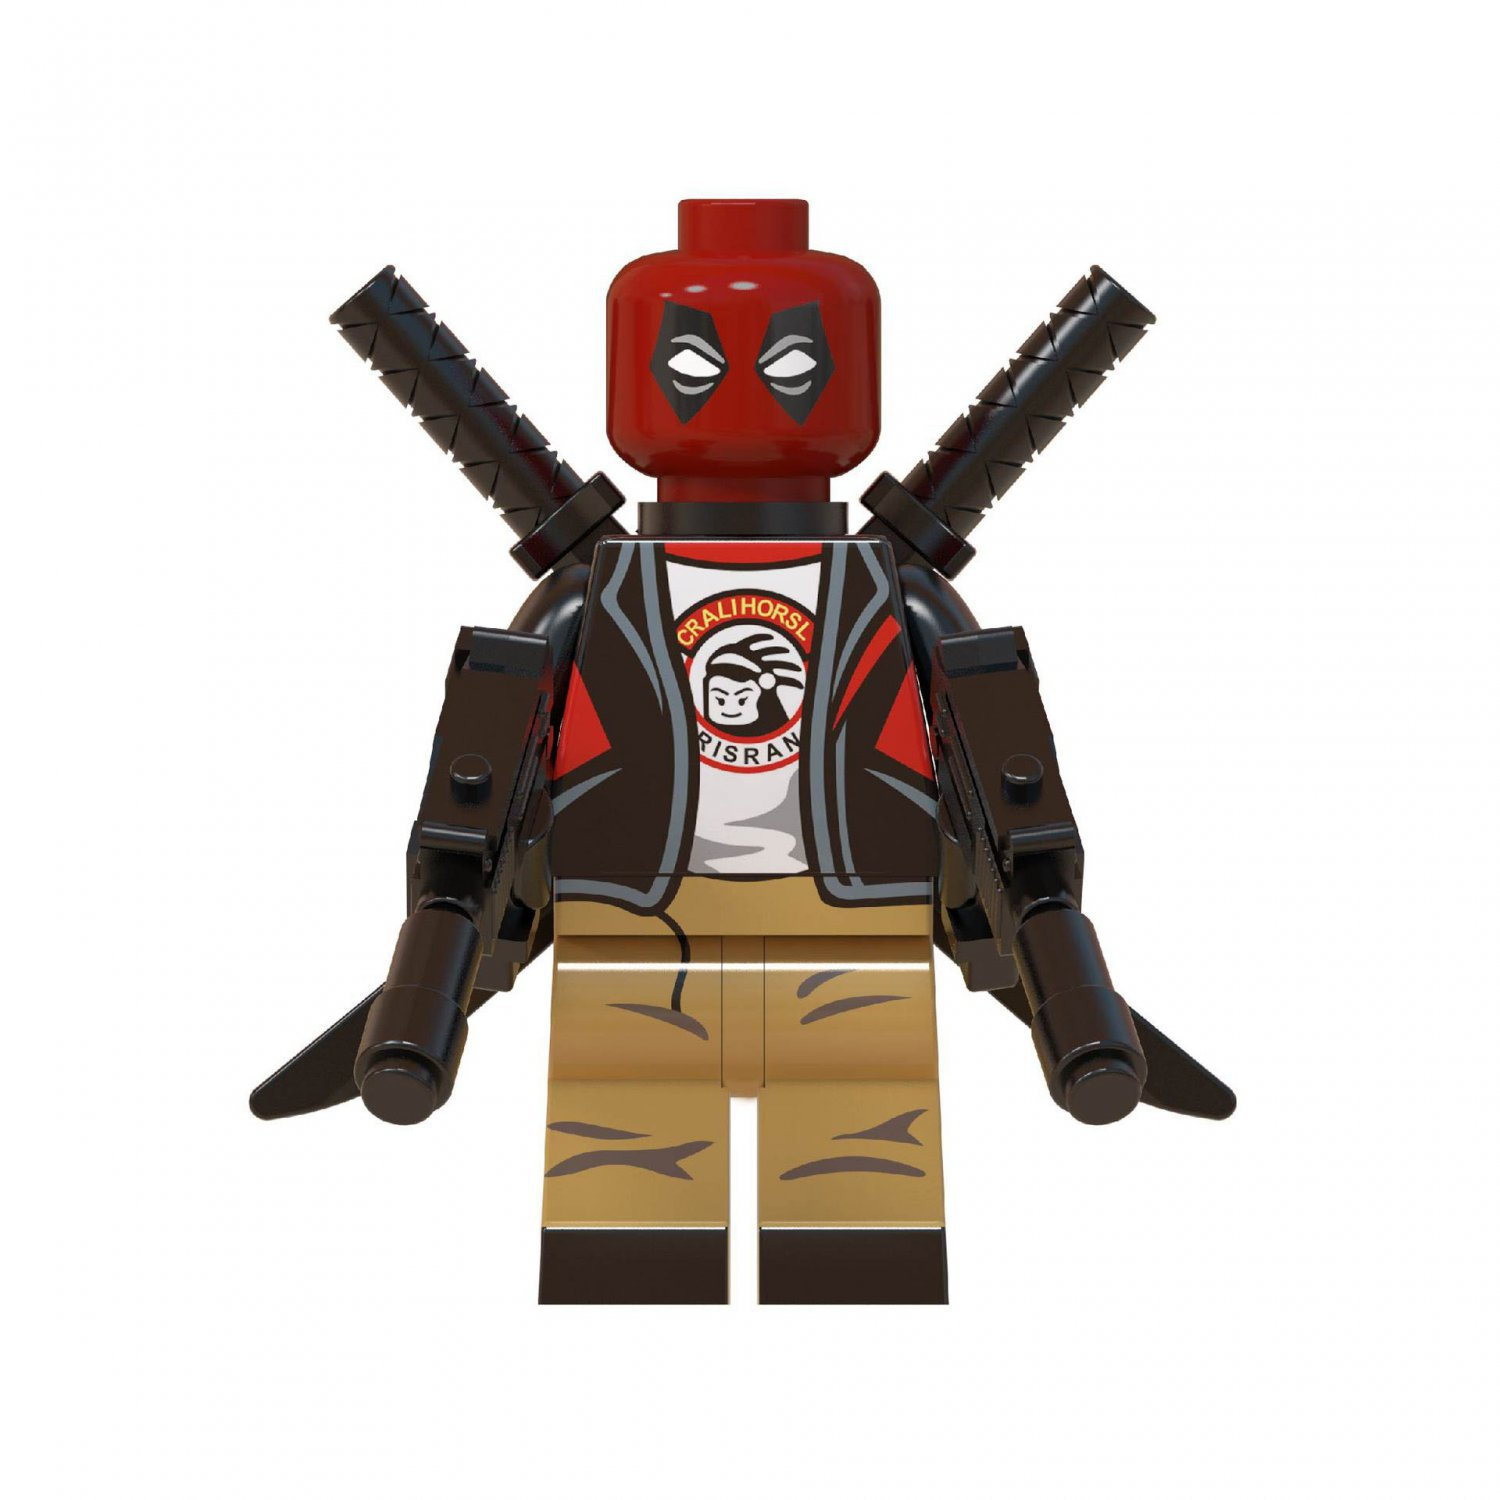 Wade Winston Wilson Deadpool Minifigures Lego Compatible Marvel Hero Toy